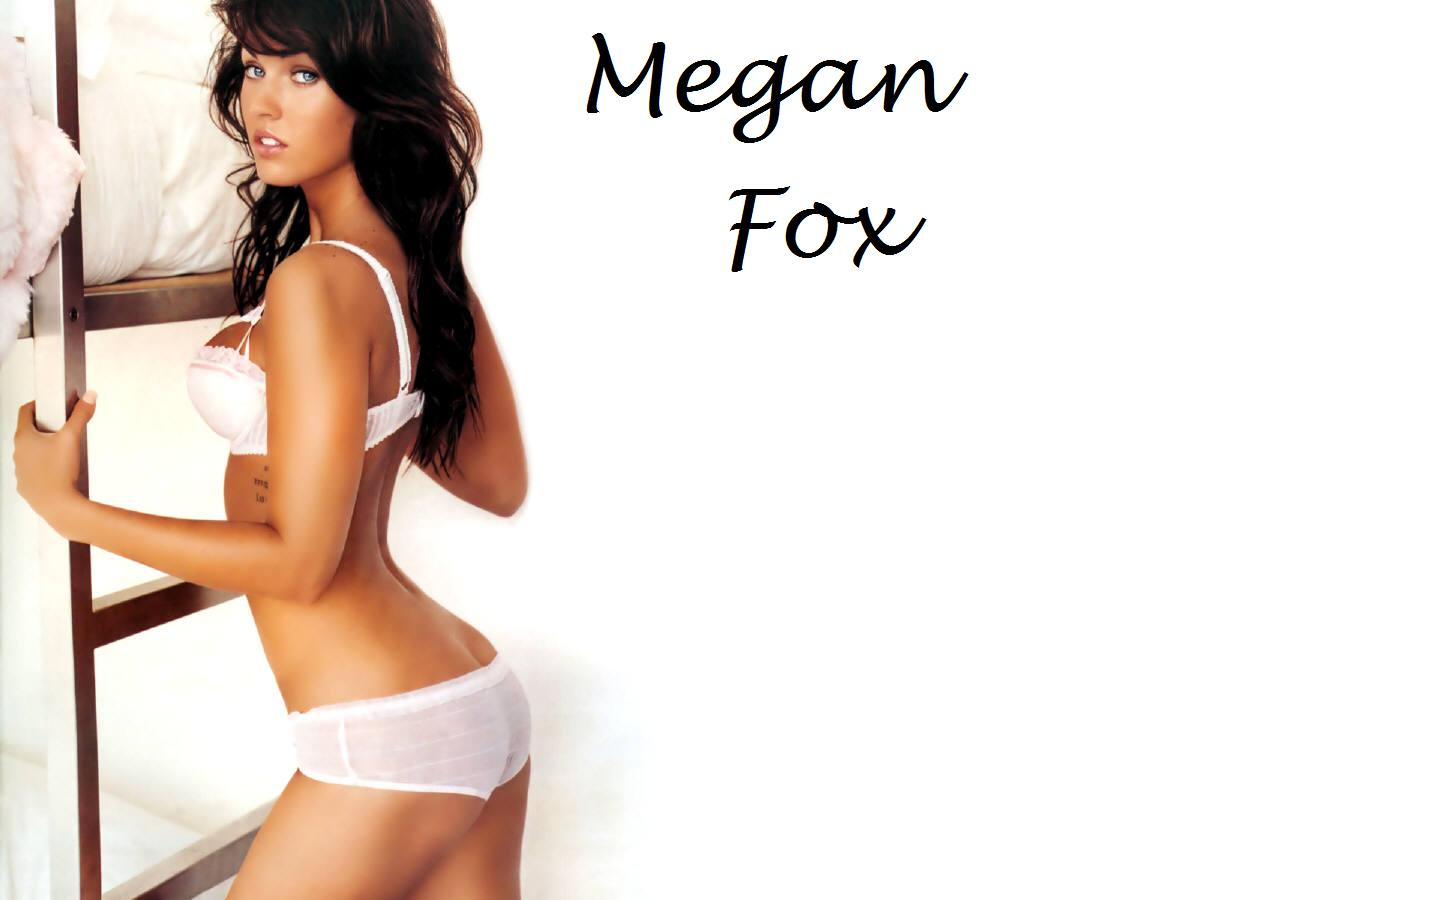 sexy+Megan+Fox Romantic porn picture of a woman covered in sand and having sex on a beach.